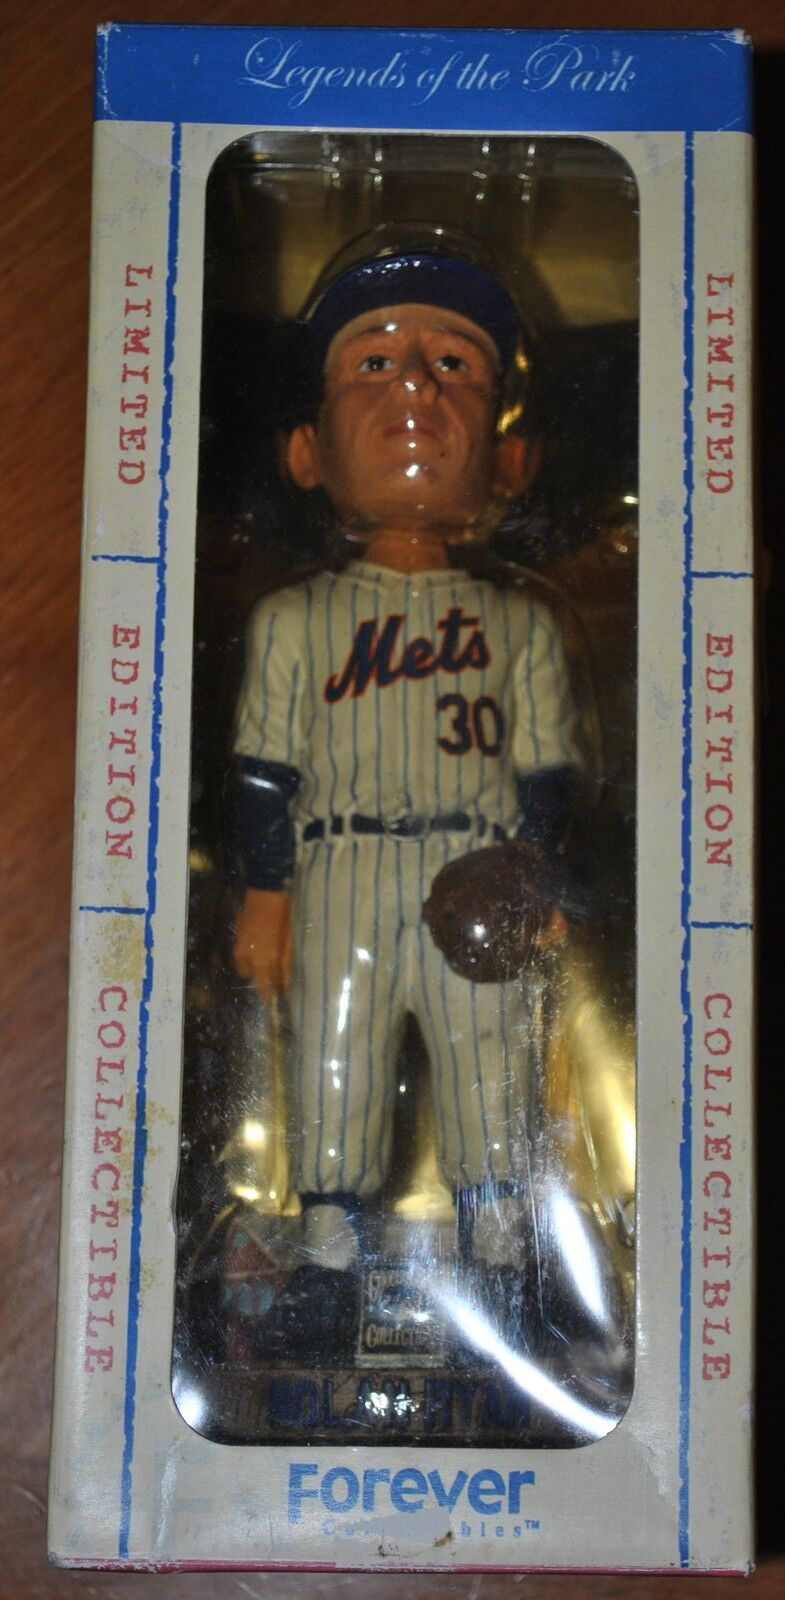 NOLAN RYAN METS FOREVER LIMITED EDITION COLLECTIBLE COOPERSTOWN 2136   5000